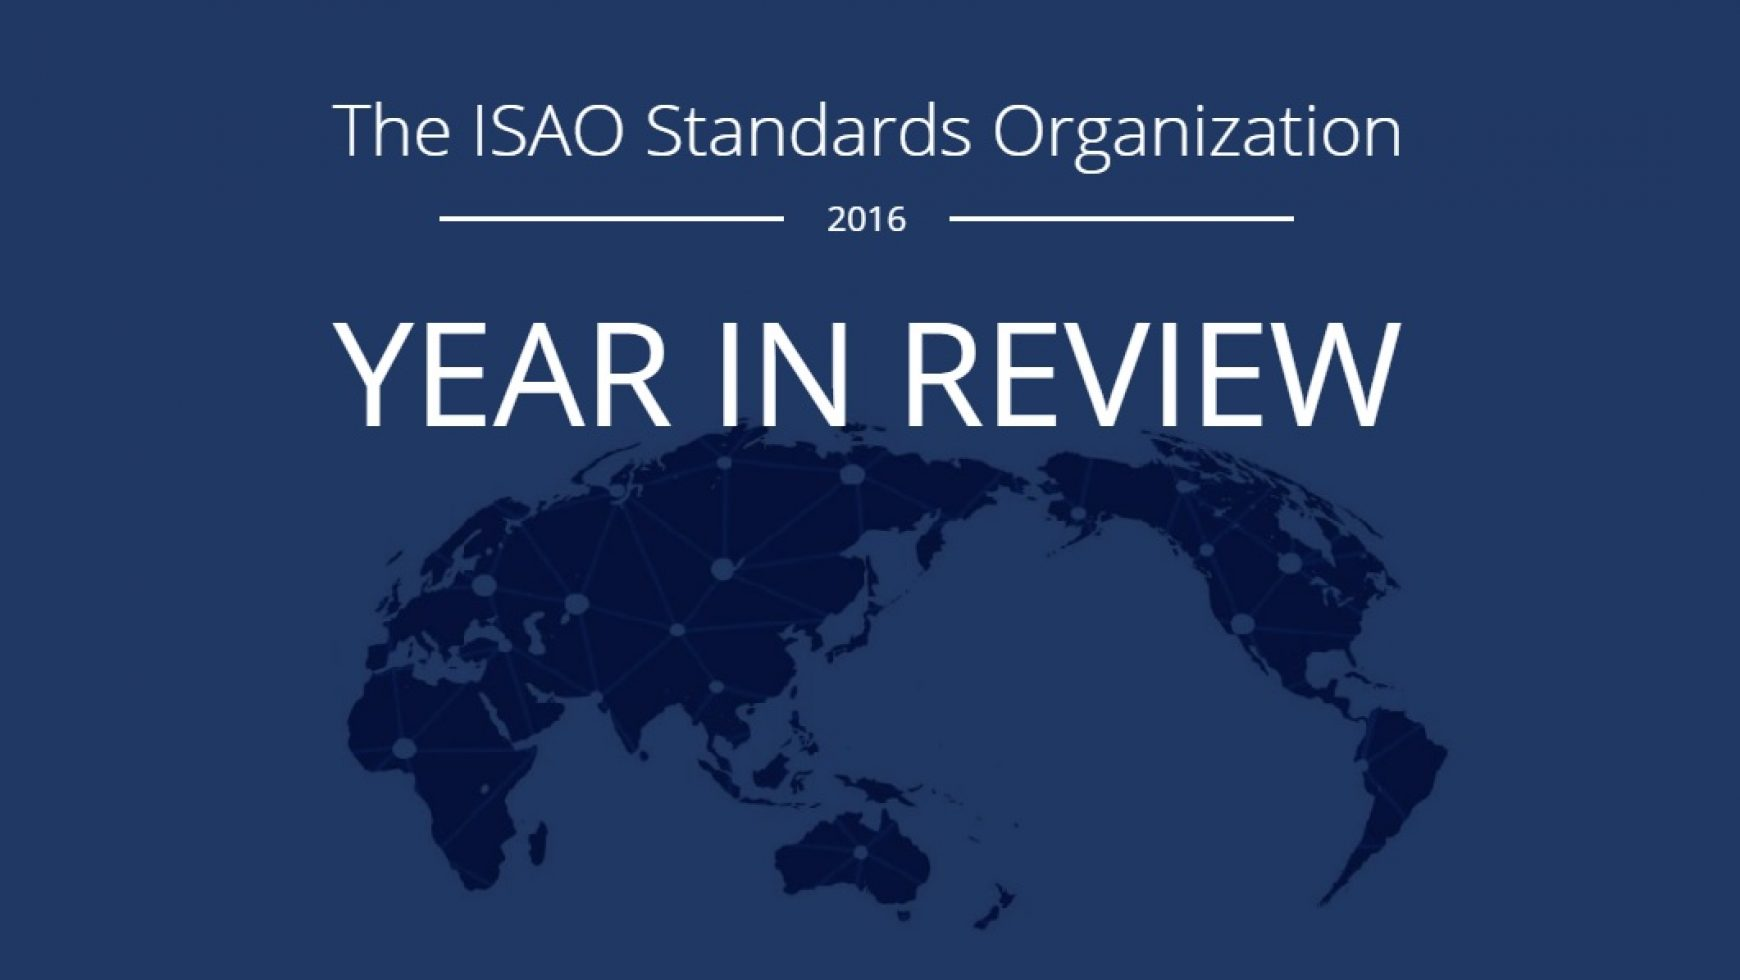 The ISAO Standards Organization 2016 Year in Review